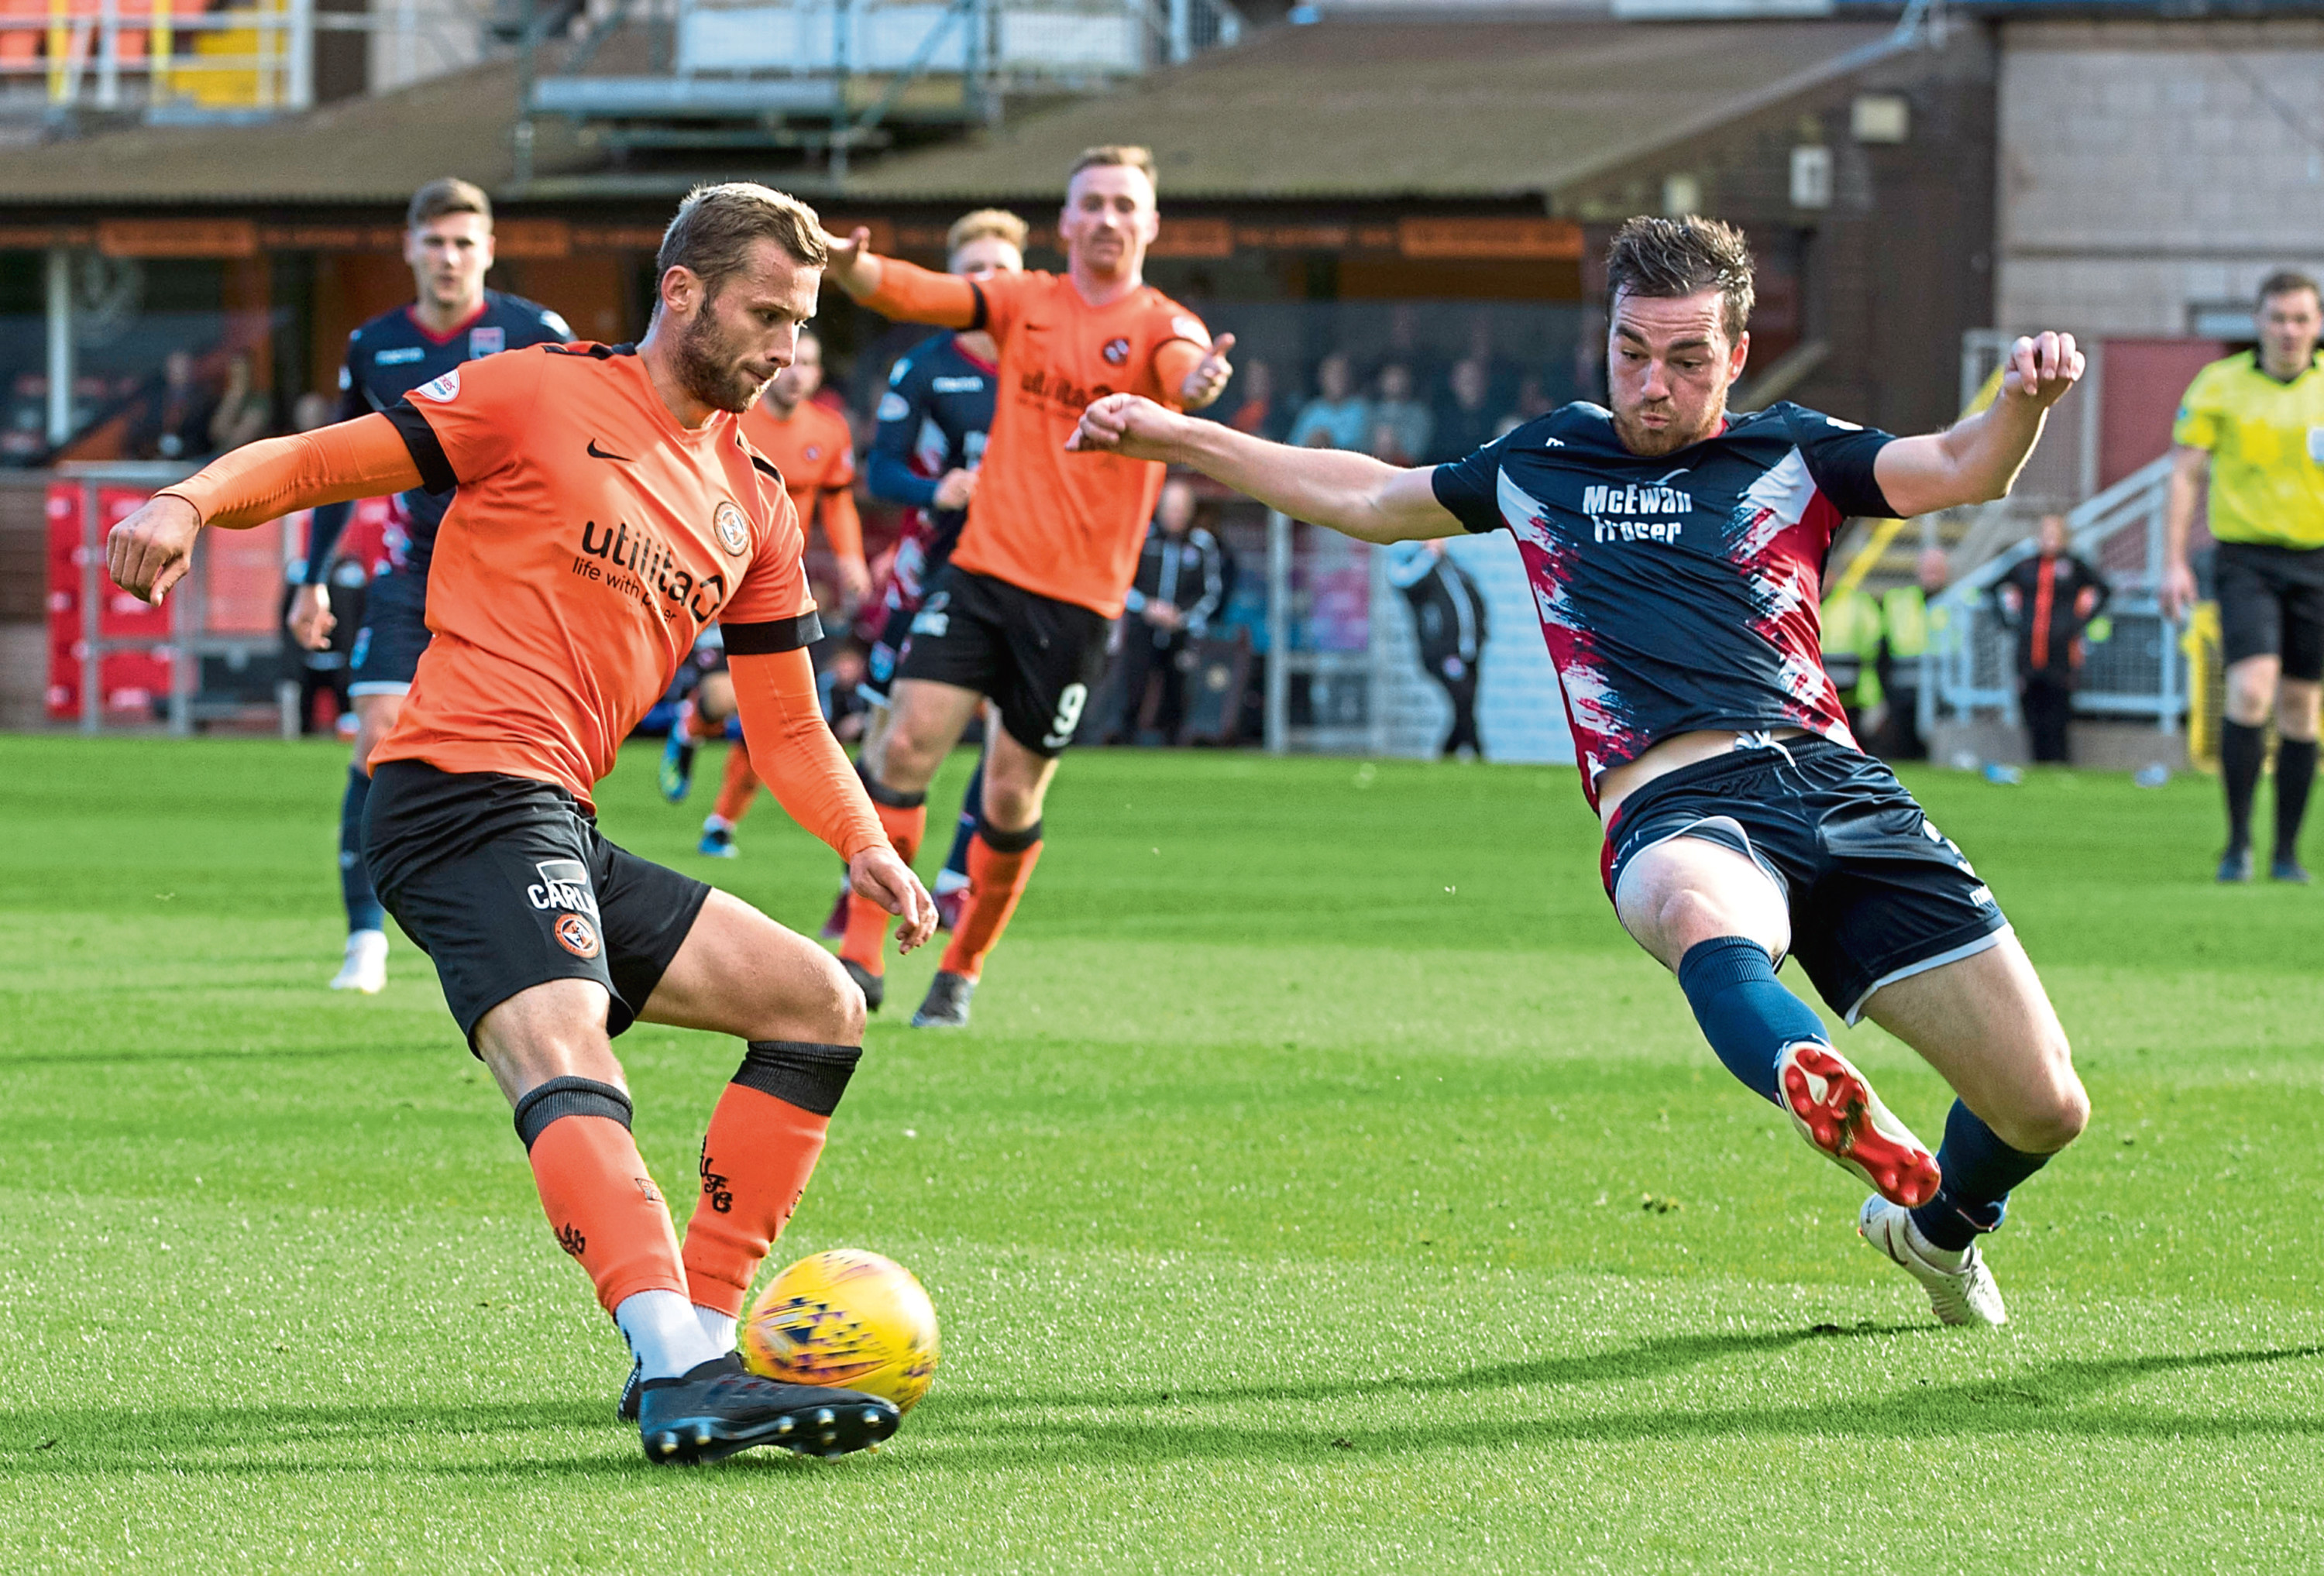 Slovakian striker Pavol Safranko scored Dundee United's only goal in their 5-1 home loss to Ross County last Saturday, a result which ultimately spelled the end for boss Csaba Laszlo.